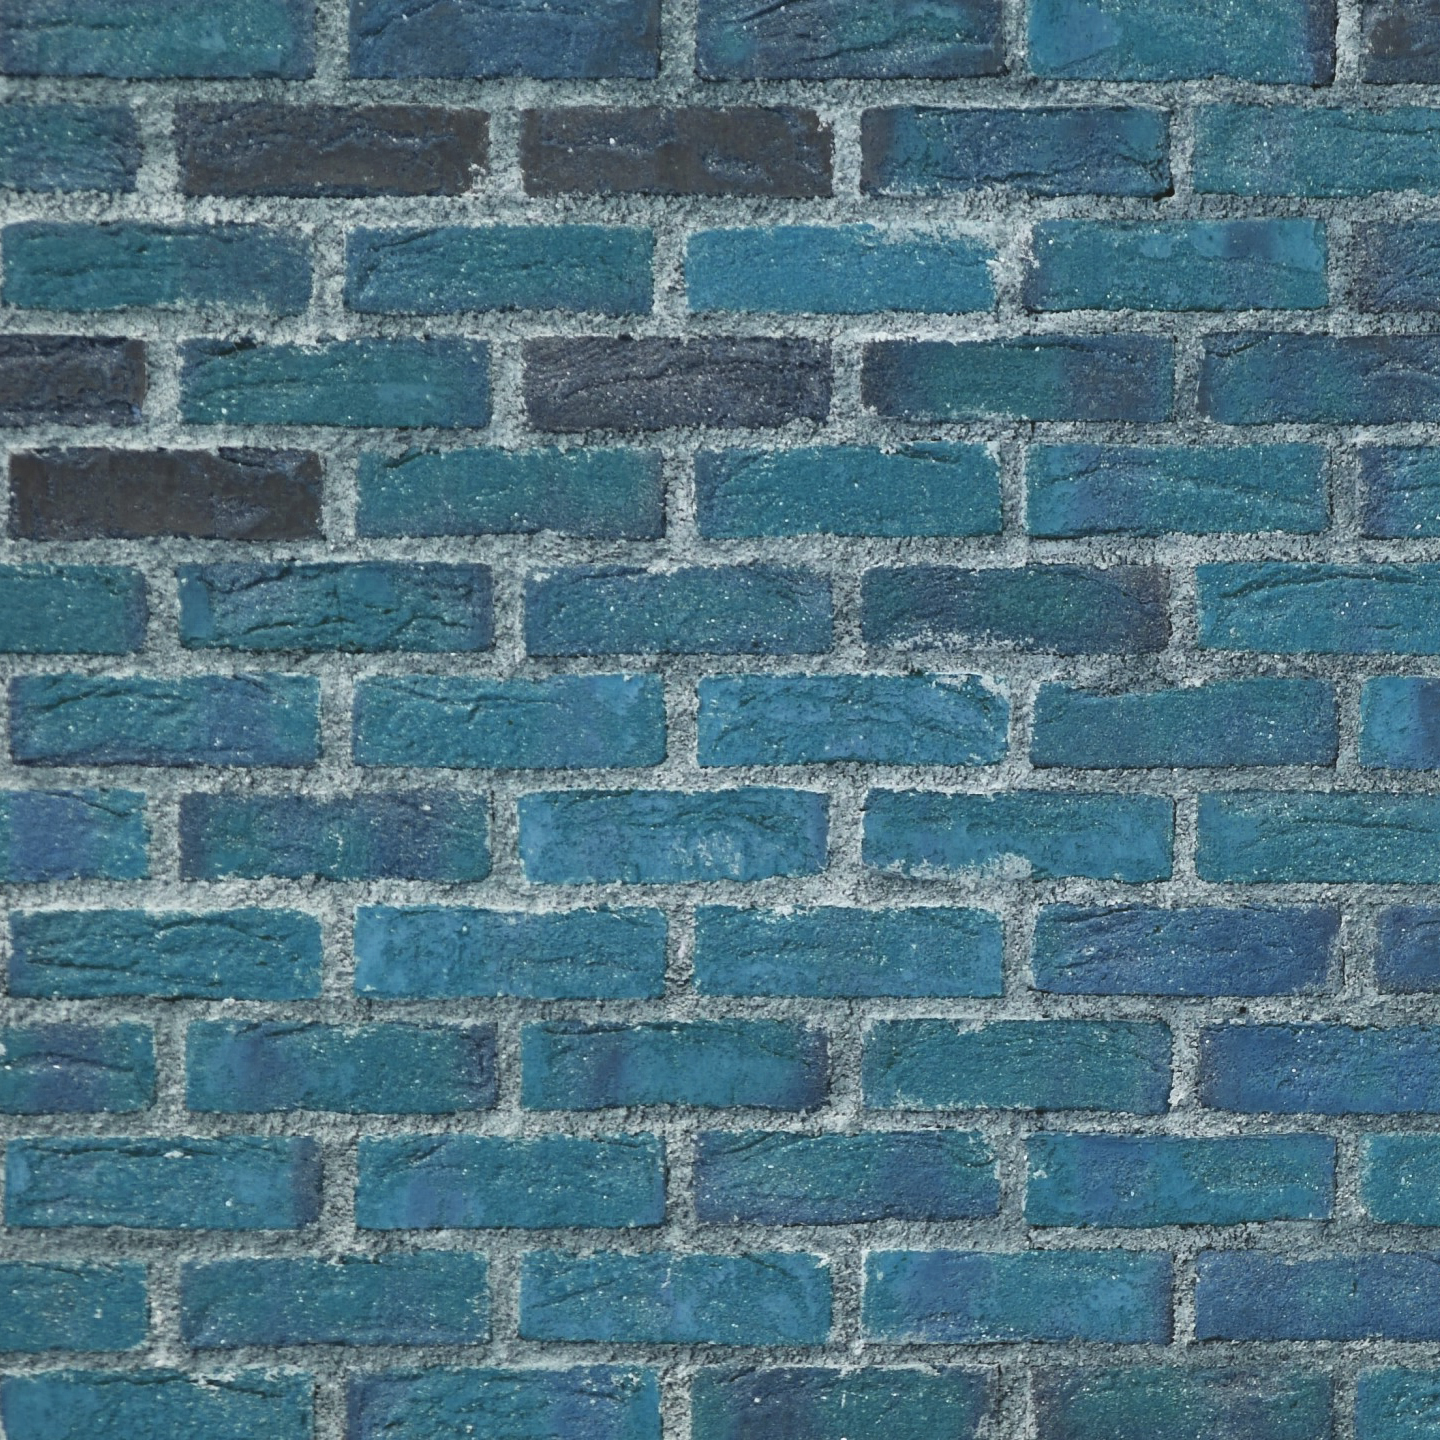 Doodlecraft: Free Colored Brick Wall Backgrounds!